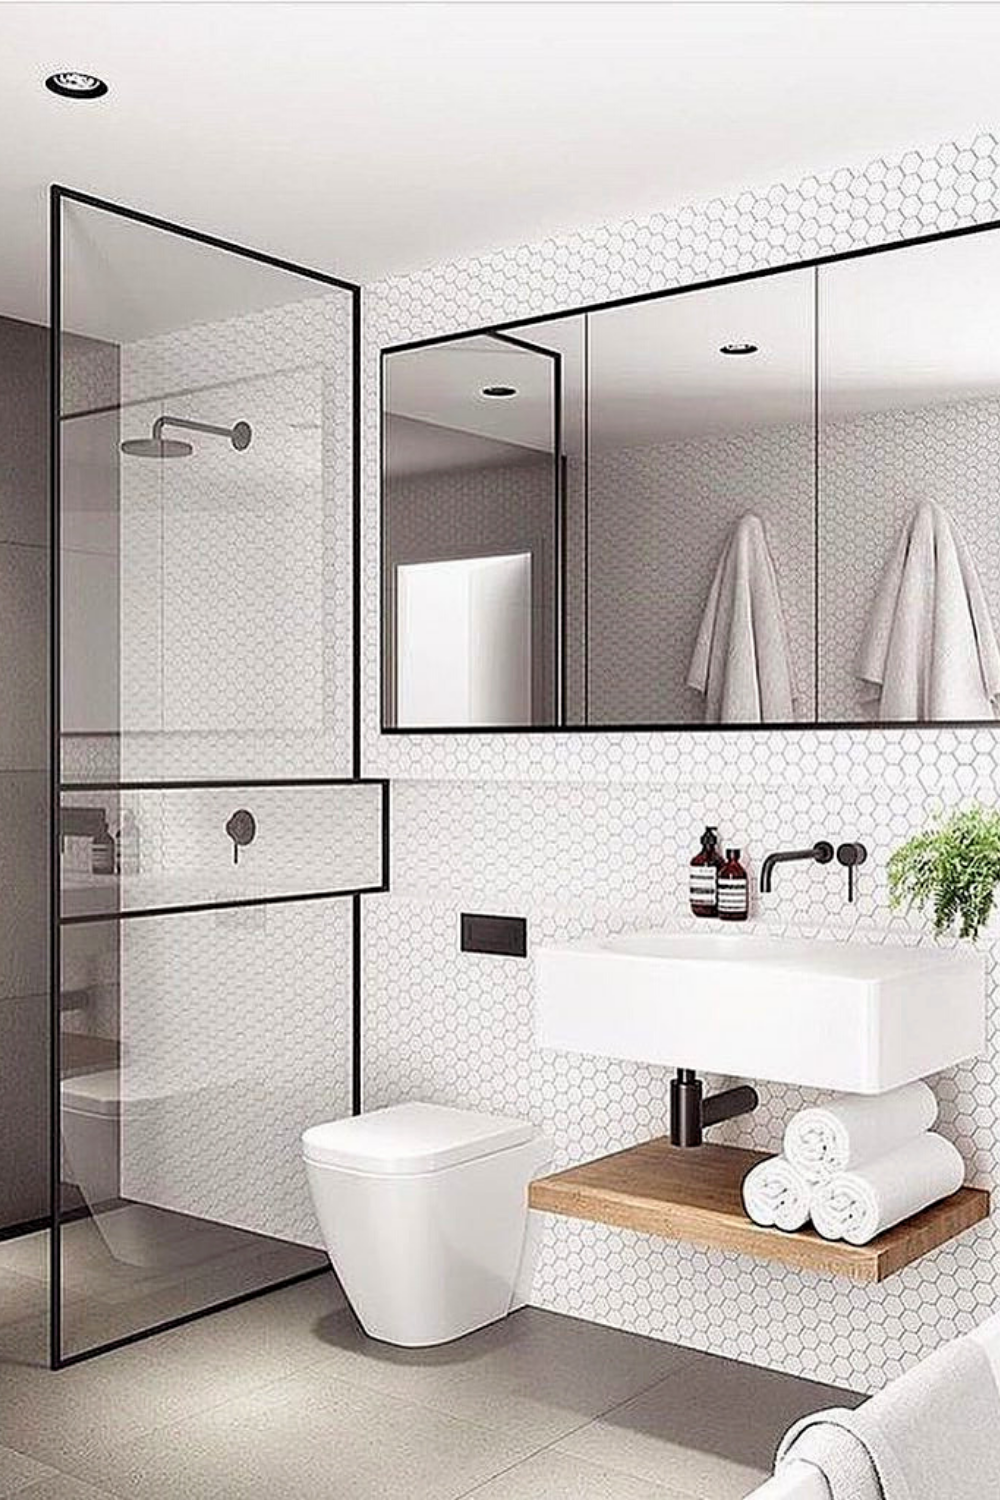 A Valuable Trick Will Be To Beautify The Area With Tiles Or Perhaps A Shiny Wallpaper Bathroom Elegant Bathroom Minimalist Small Bathrooms Bathrooms Remodel